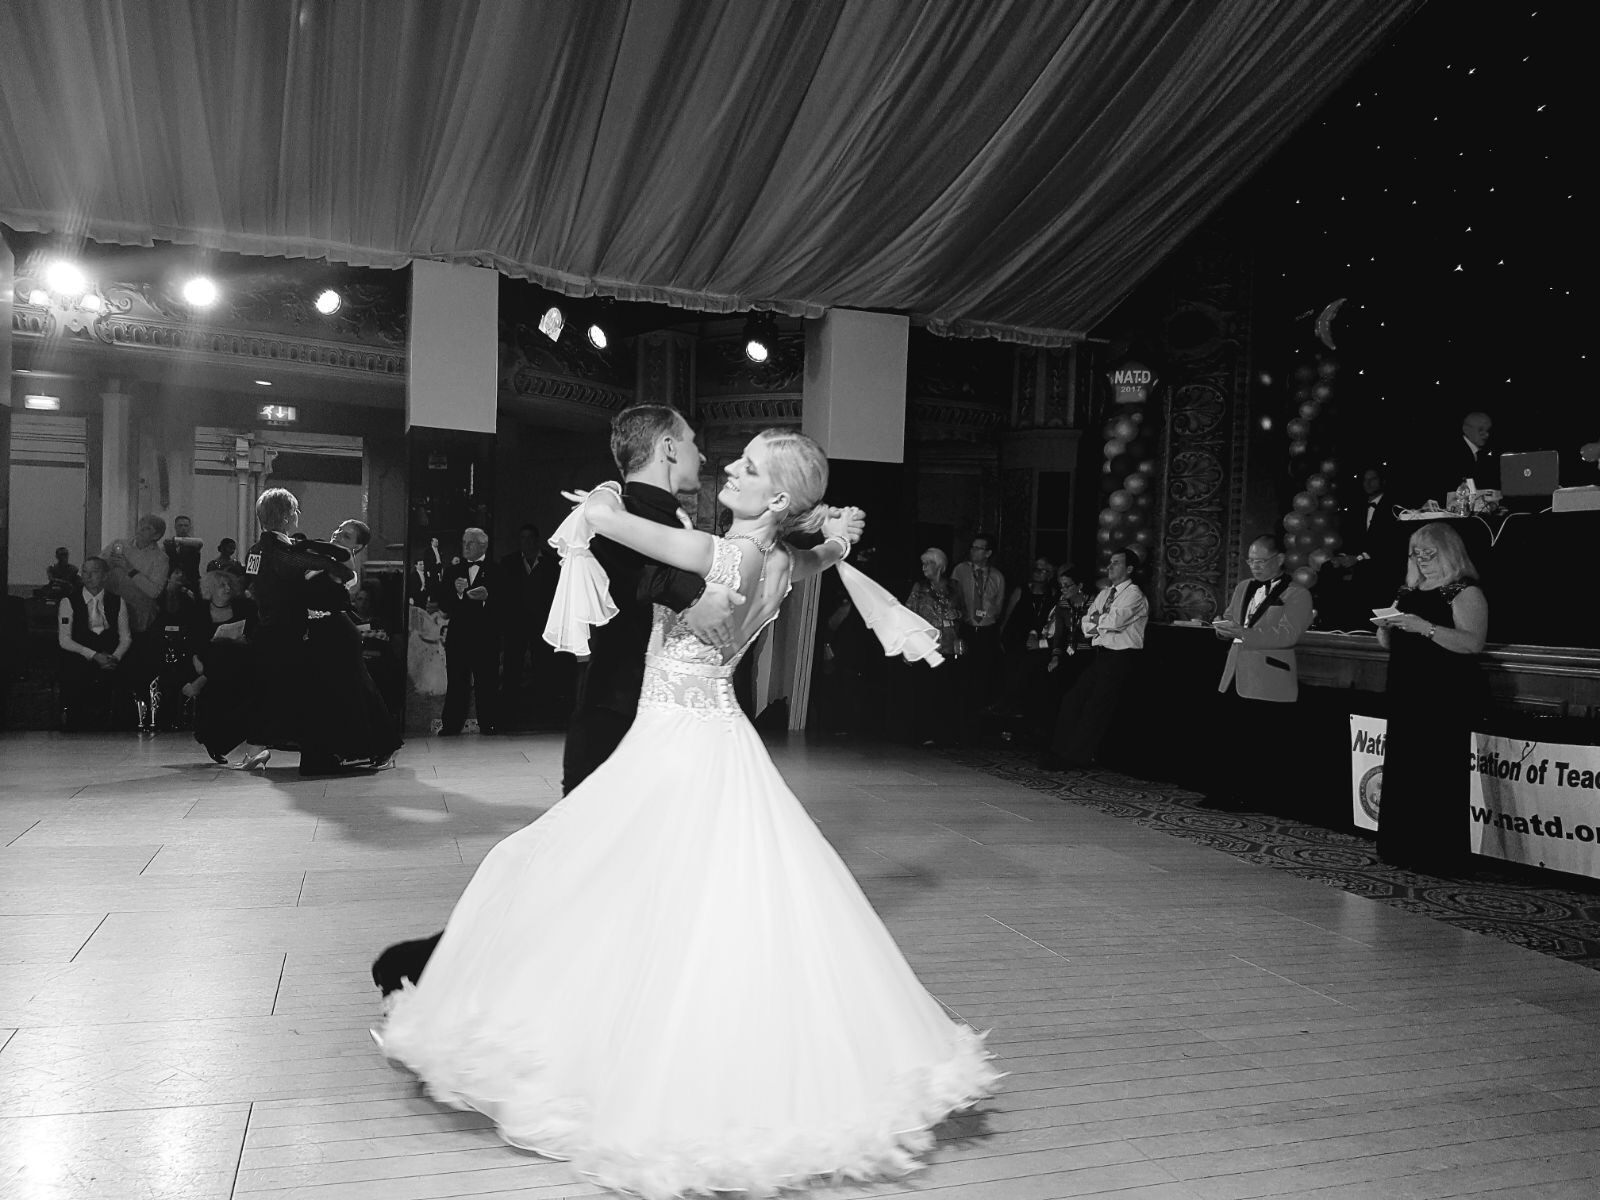 Dance Competitions & Dance Classes In Surrey